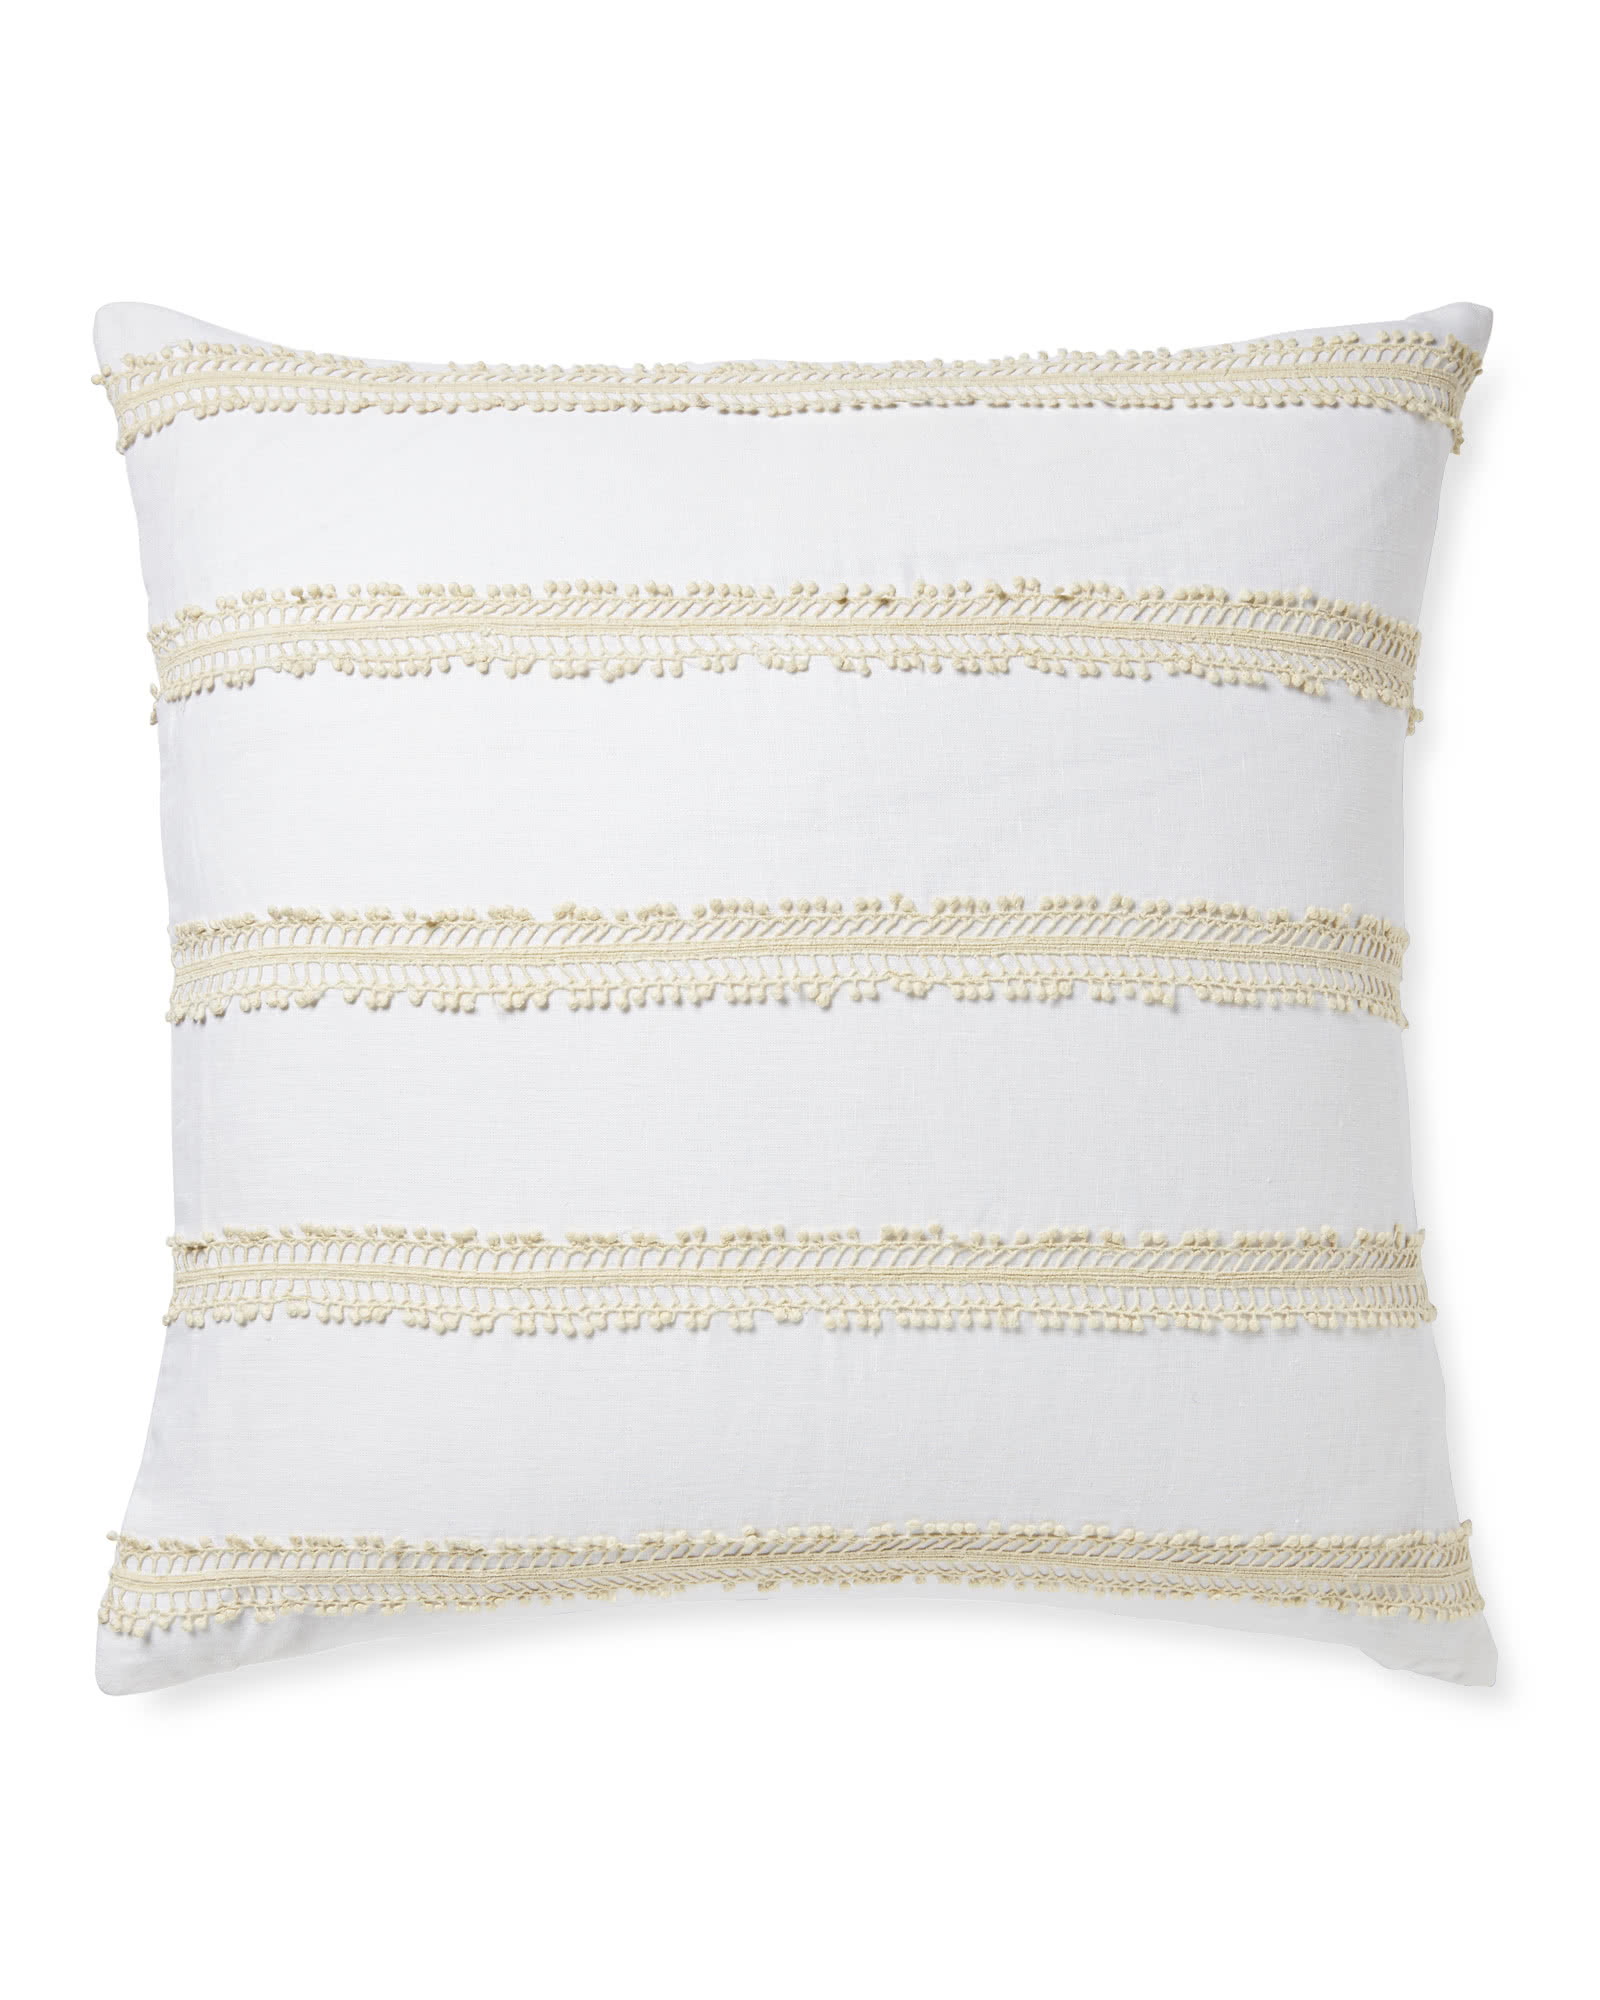 Sevilla Pillow Cover, White/Ivory